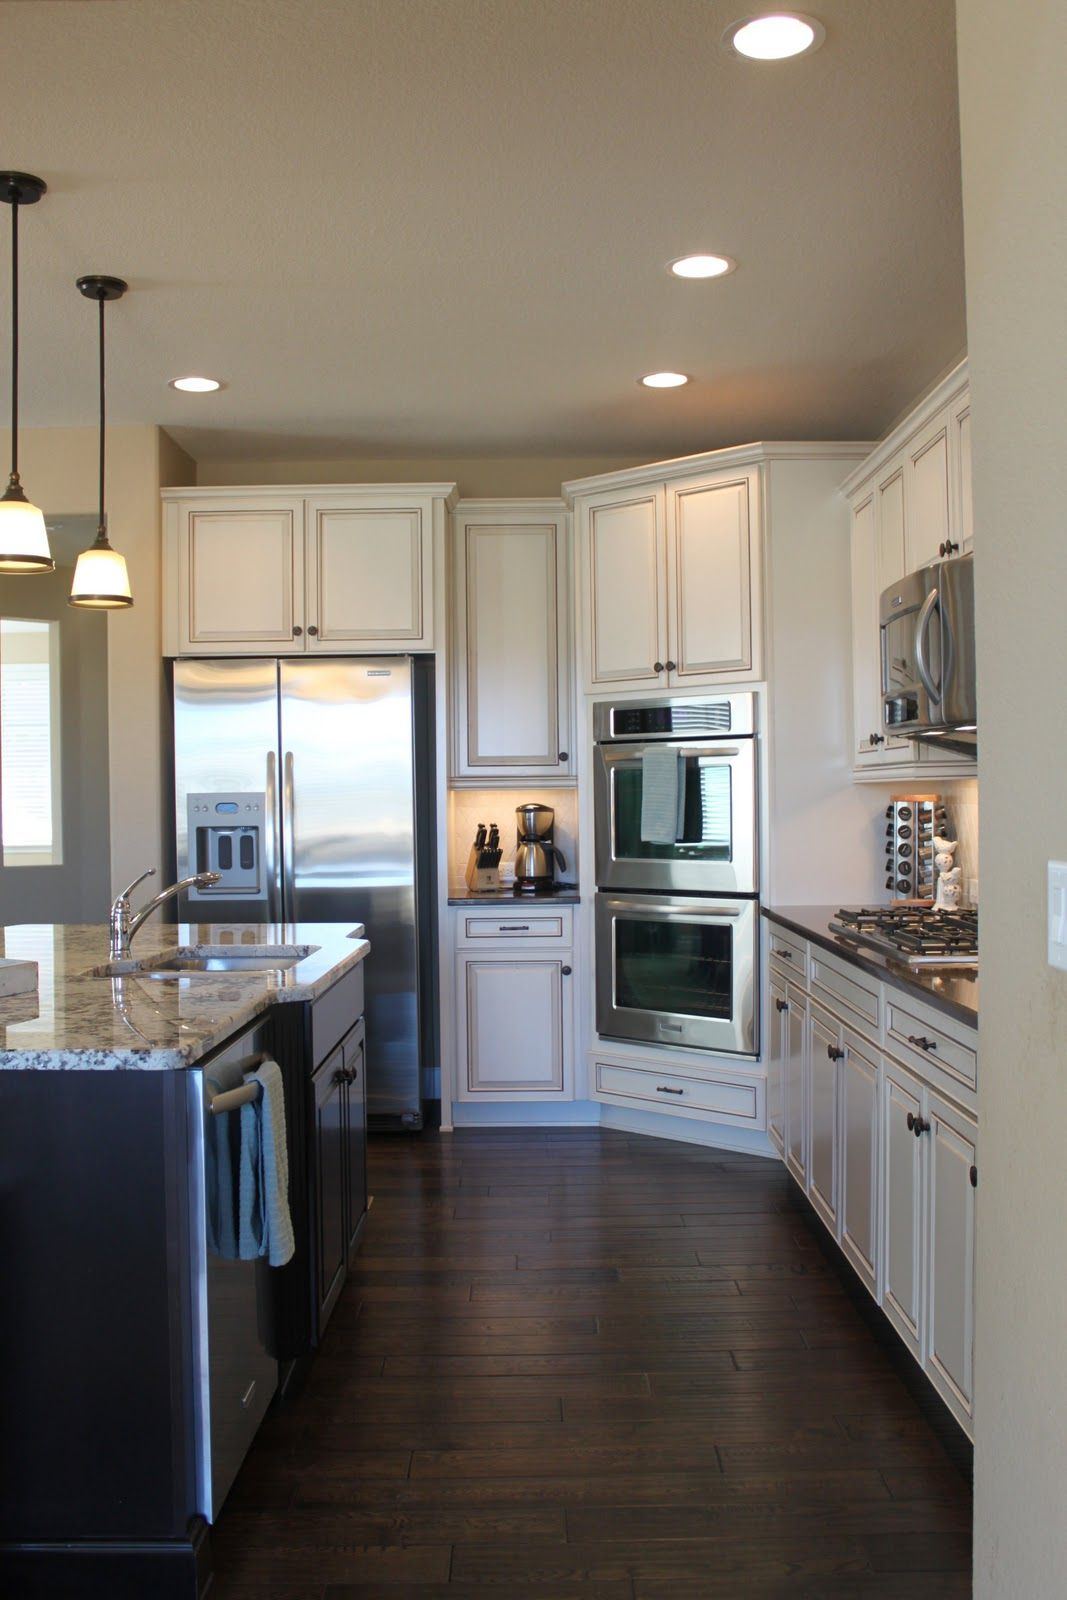 Kitchens With White Cabinets And Dark Floors love the white cabinets and wide plank floors. | favorite places